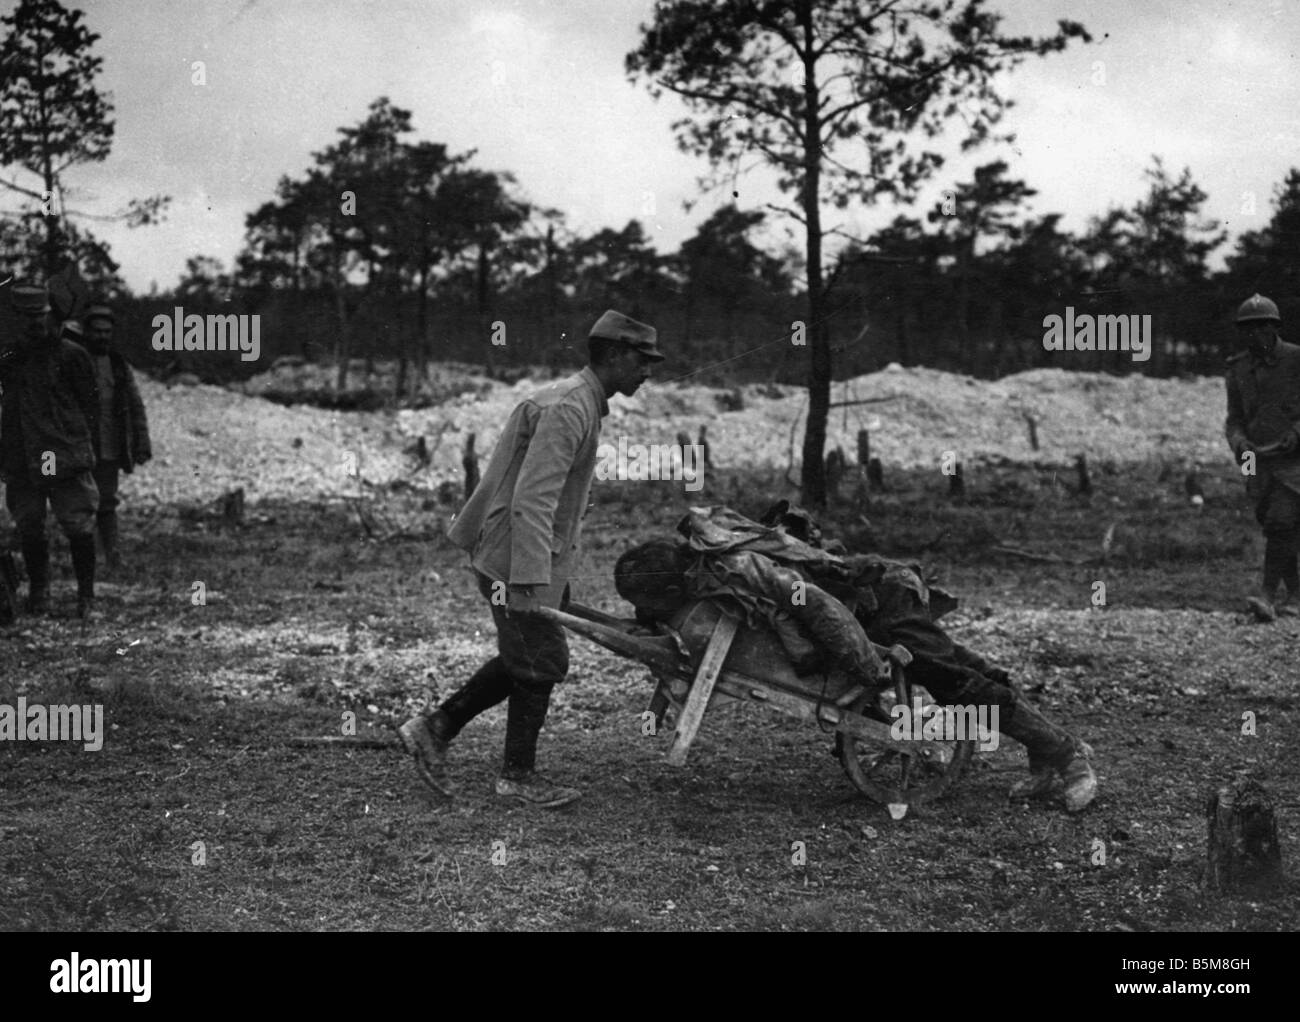 2 G55 F1 1917 9 WWI Recovery of Soldier killed in act History WWI France Trench Warfare Recovery of a German Soldier - Stock Image